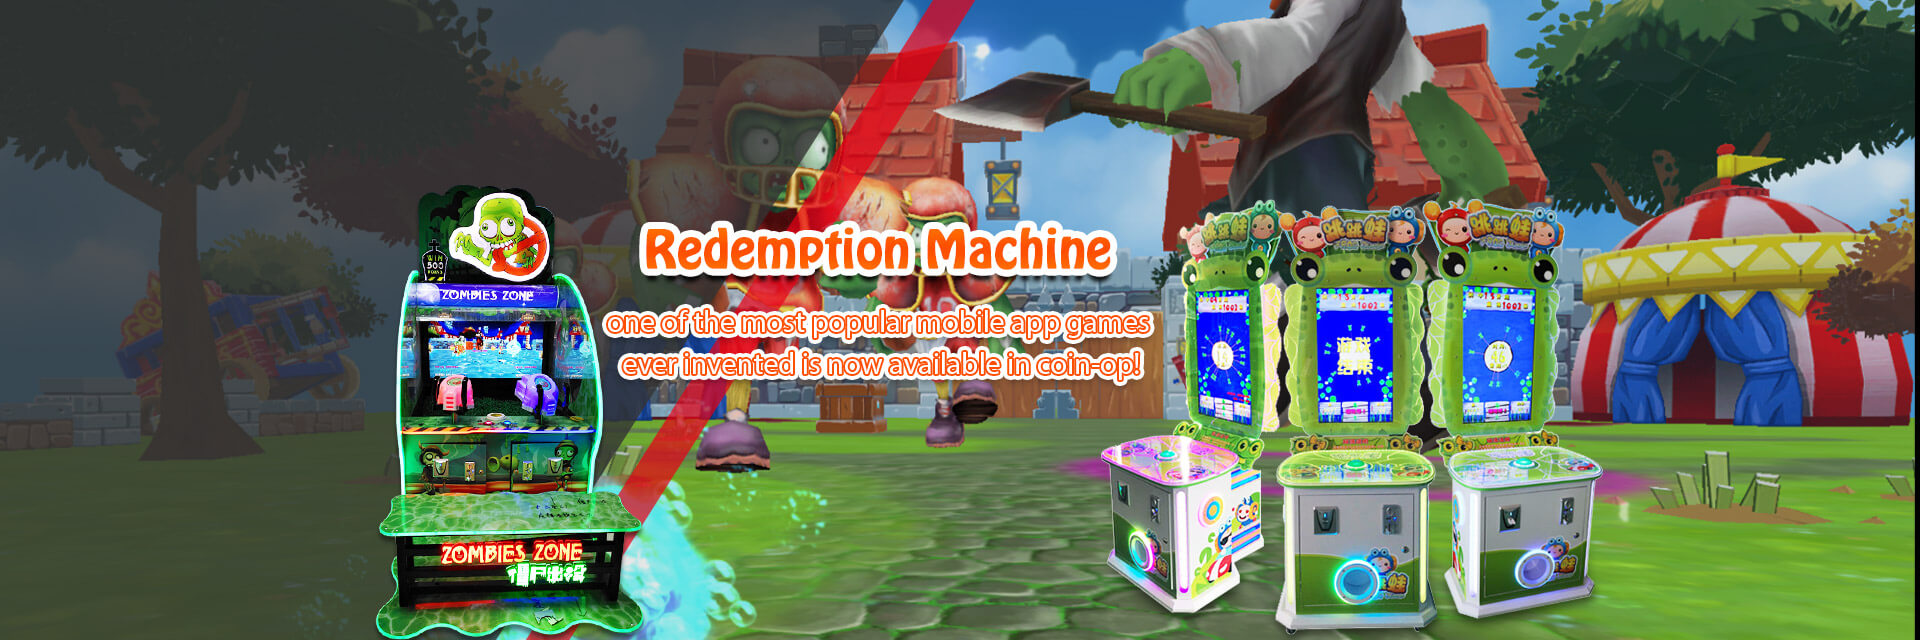 Redemption Machine